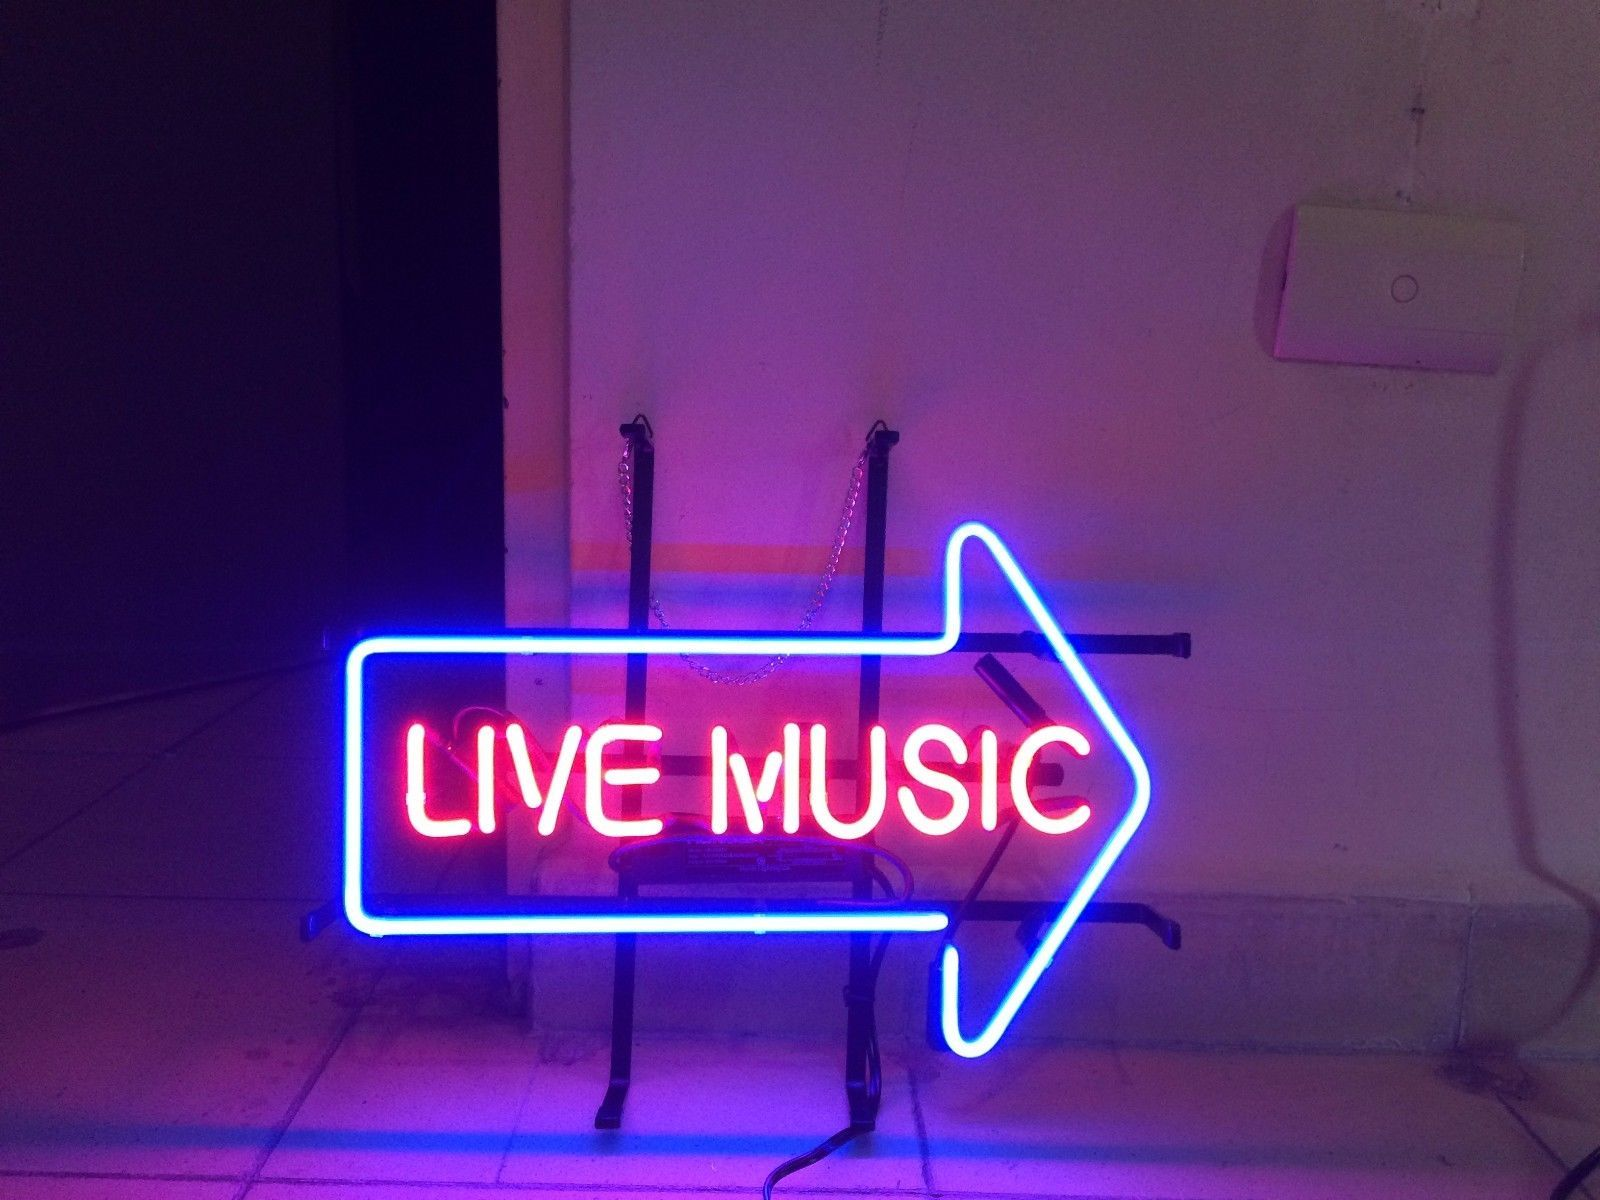 Live Music Bar Pub Beer Beer Room Hotel Game Neon Sign Light Hall 1600x1200